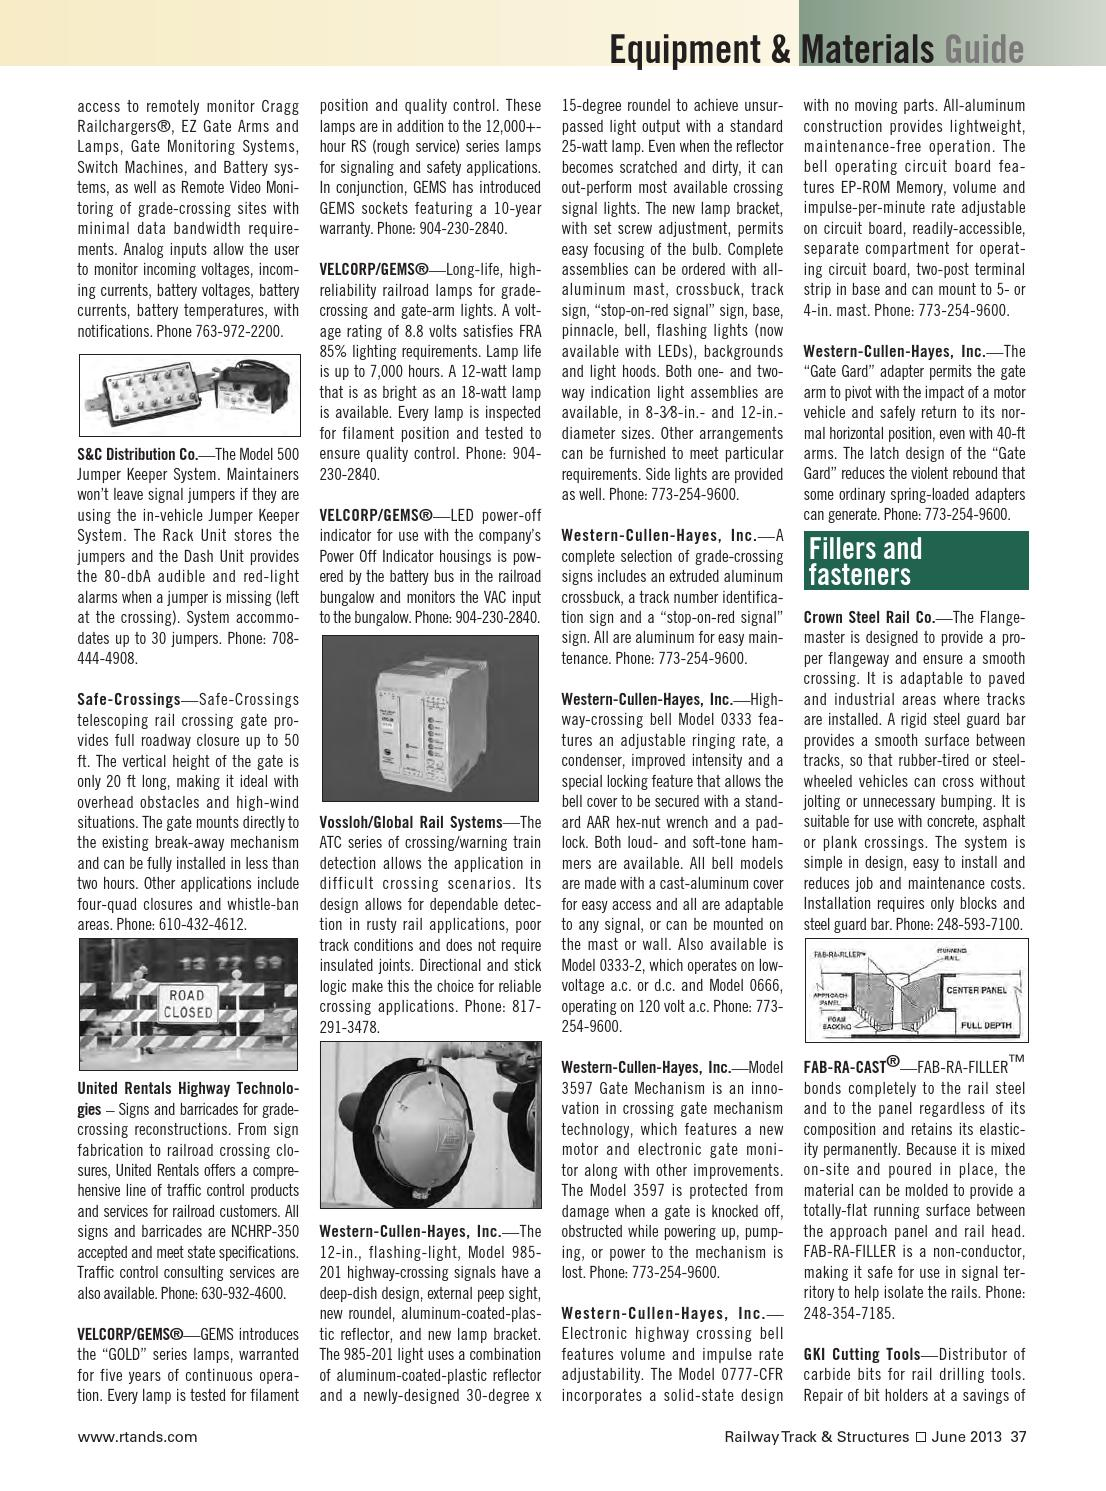 Rts0613 by Railway Track & Structures - issuu